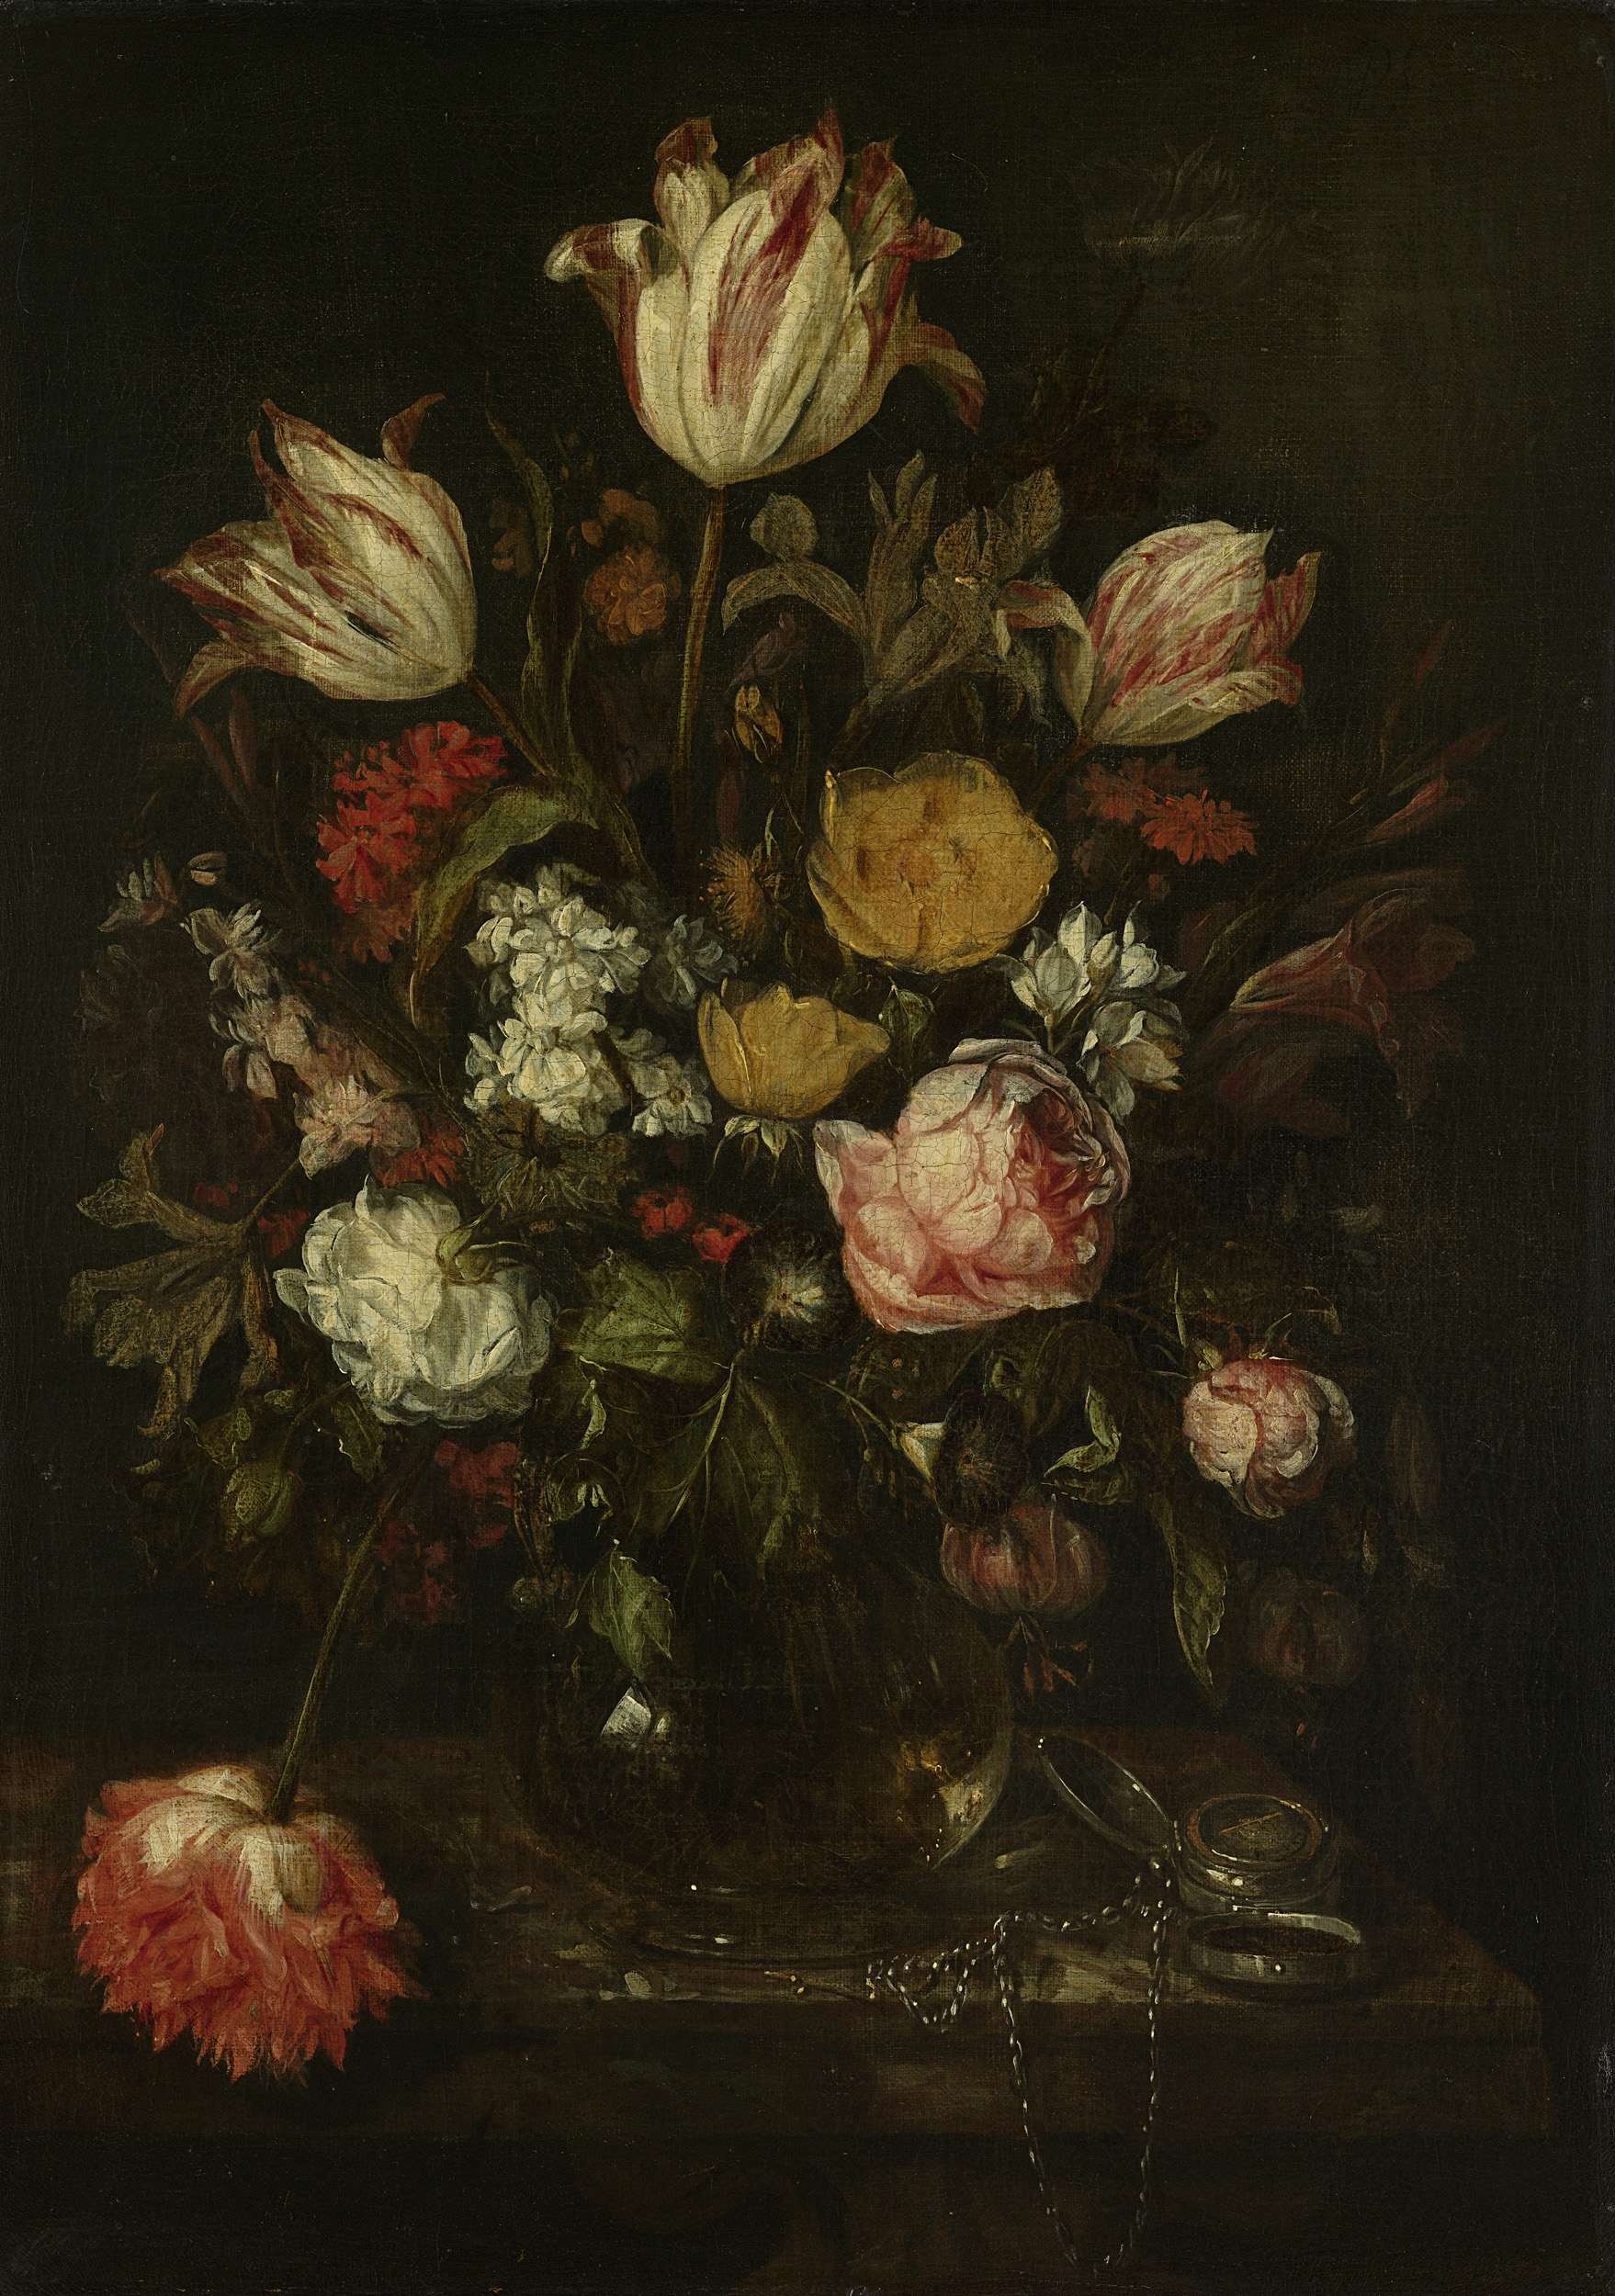 5de1fd09 bouquet of flowers in a glass vase 1650 64 x 46 amsterdam the state museum أمل دنقل - زهور